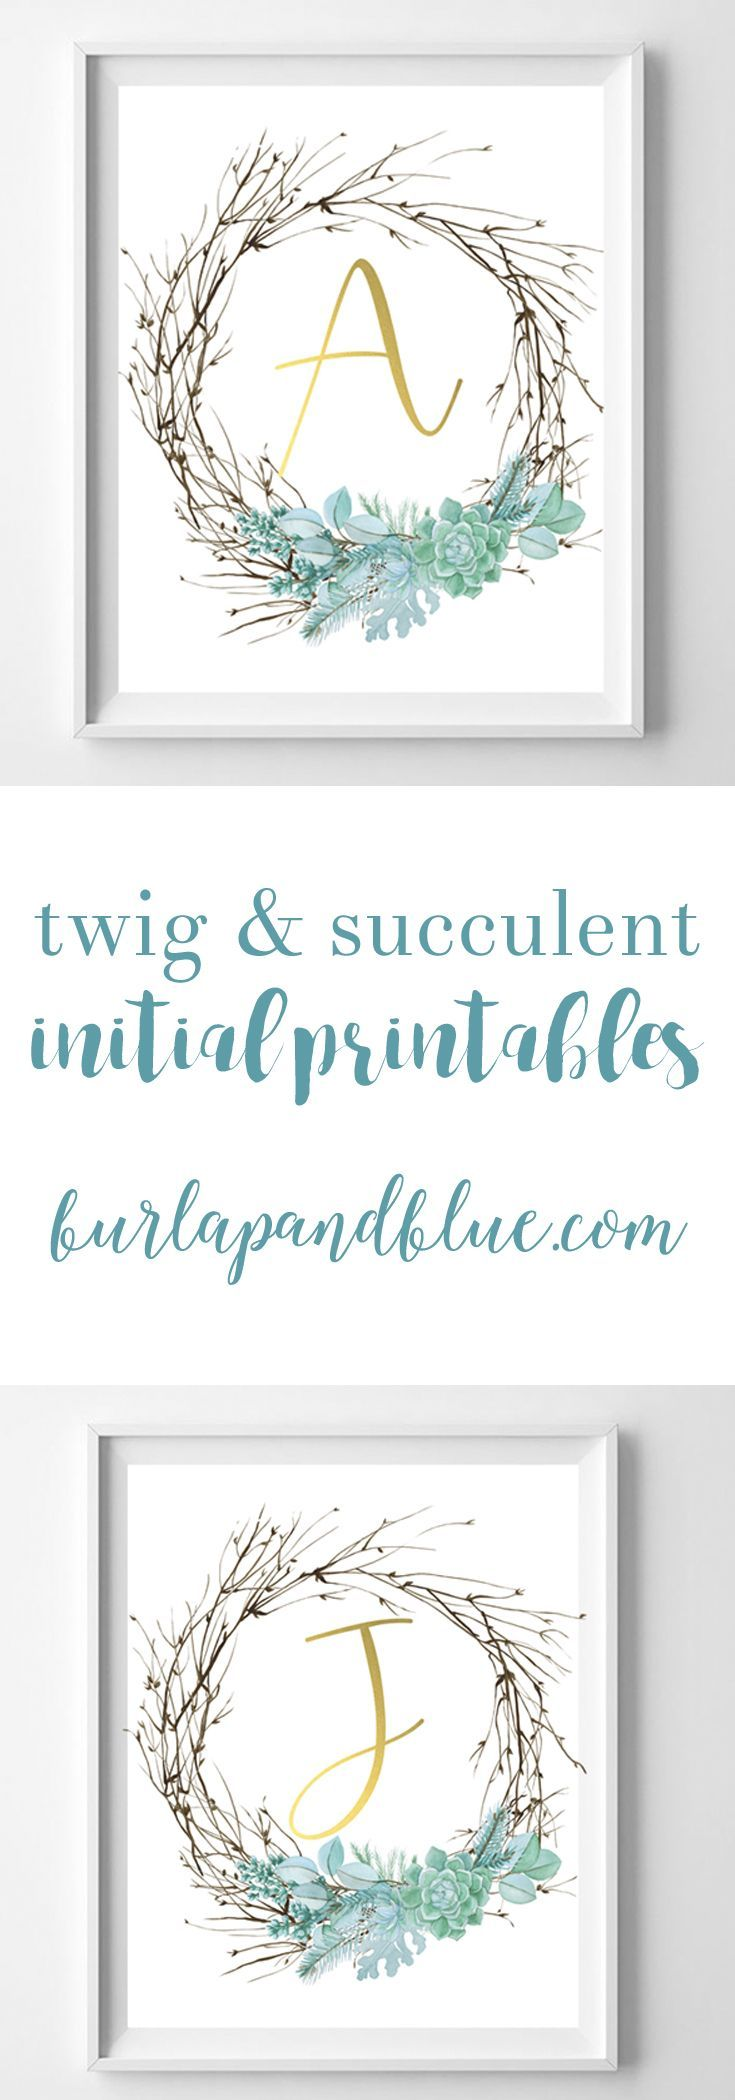 Twig And Succulent Initial Printables Free Printable Art For Your Home Gallery Wall